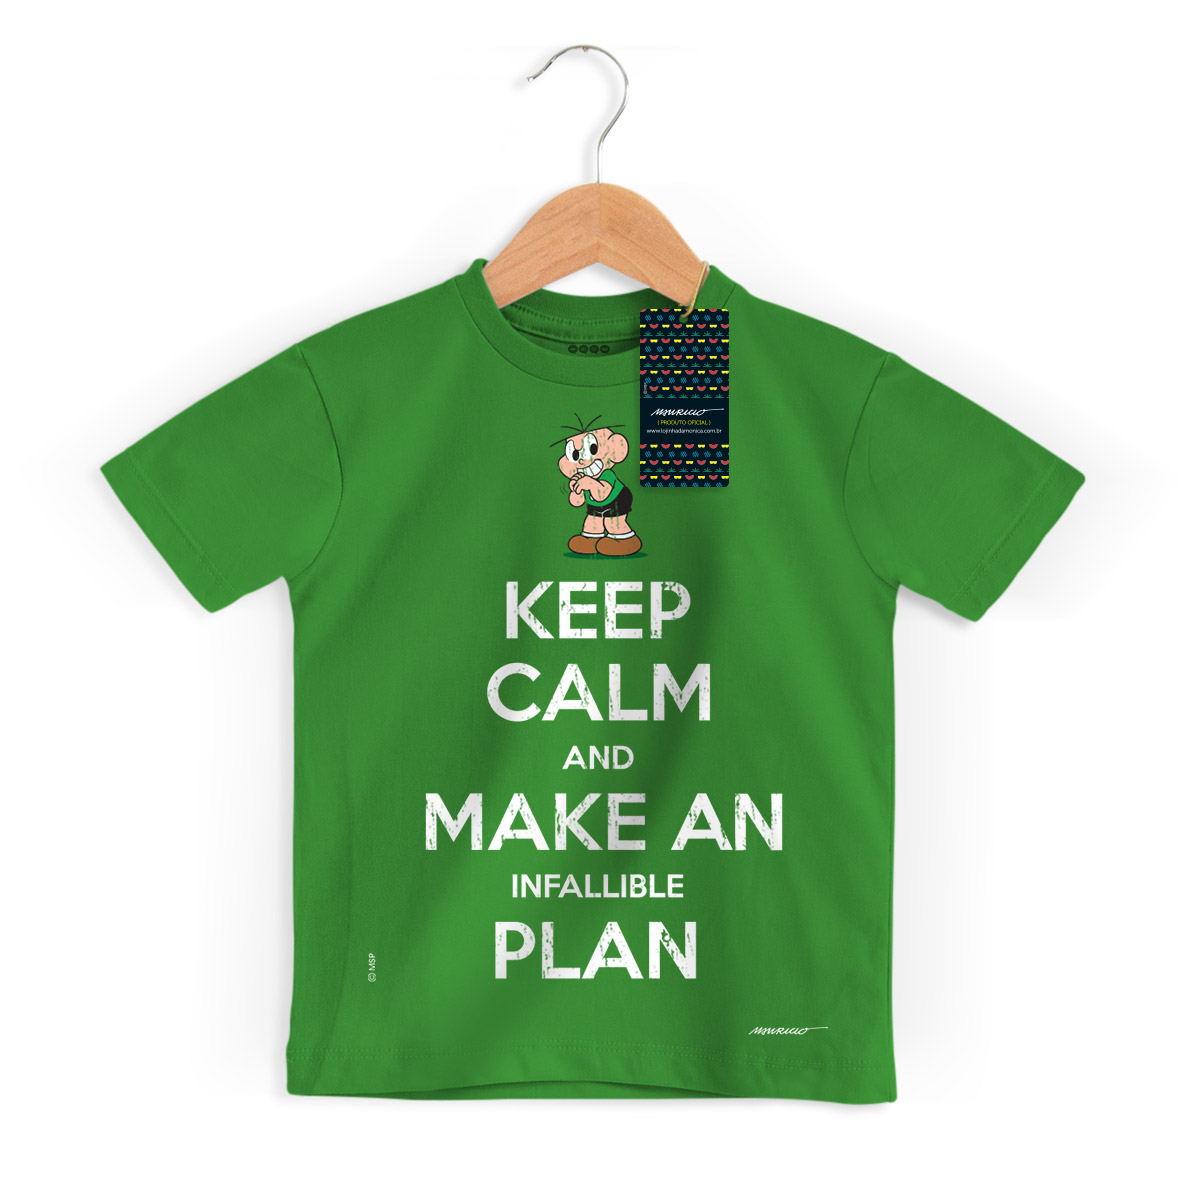 Camiseta Infantil Turma Da Mônica Cool Keep Calm And Make Infallible Plan